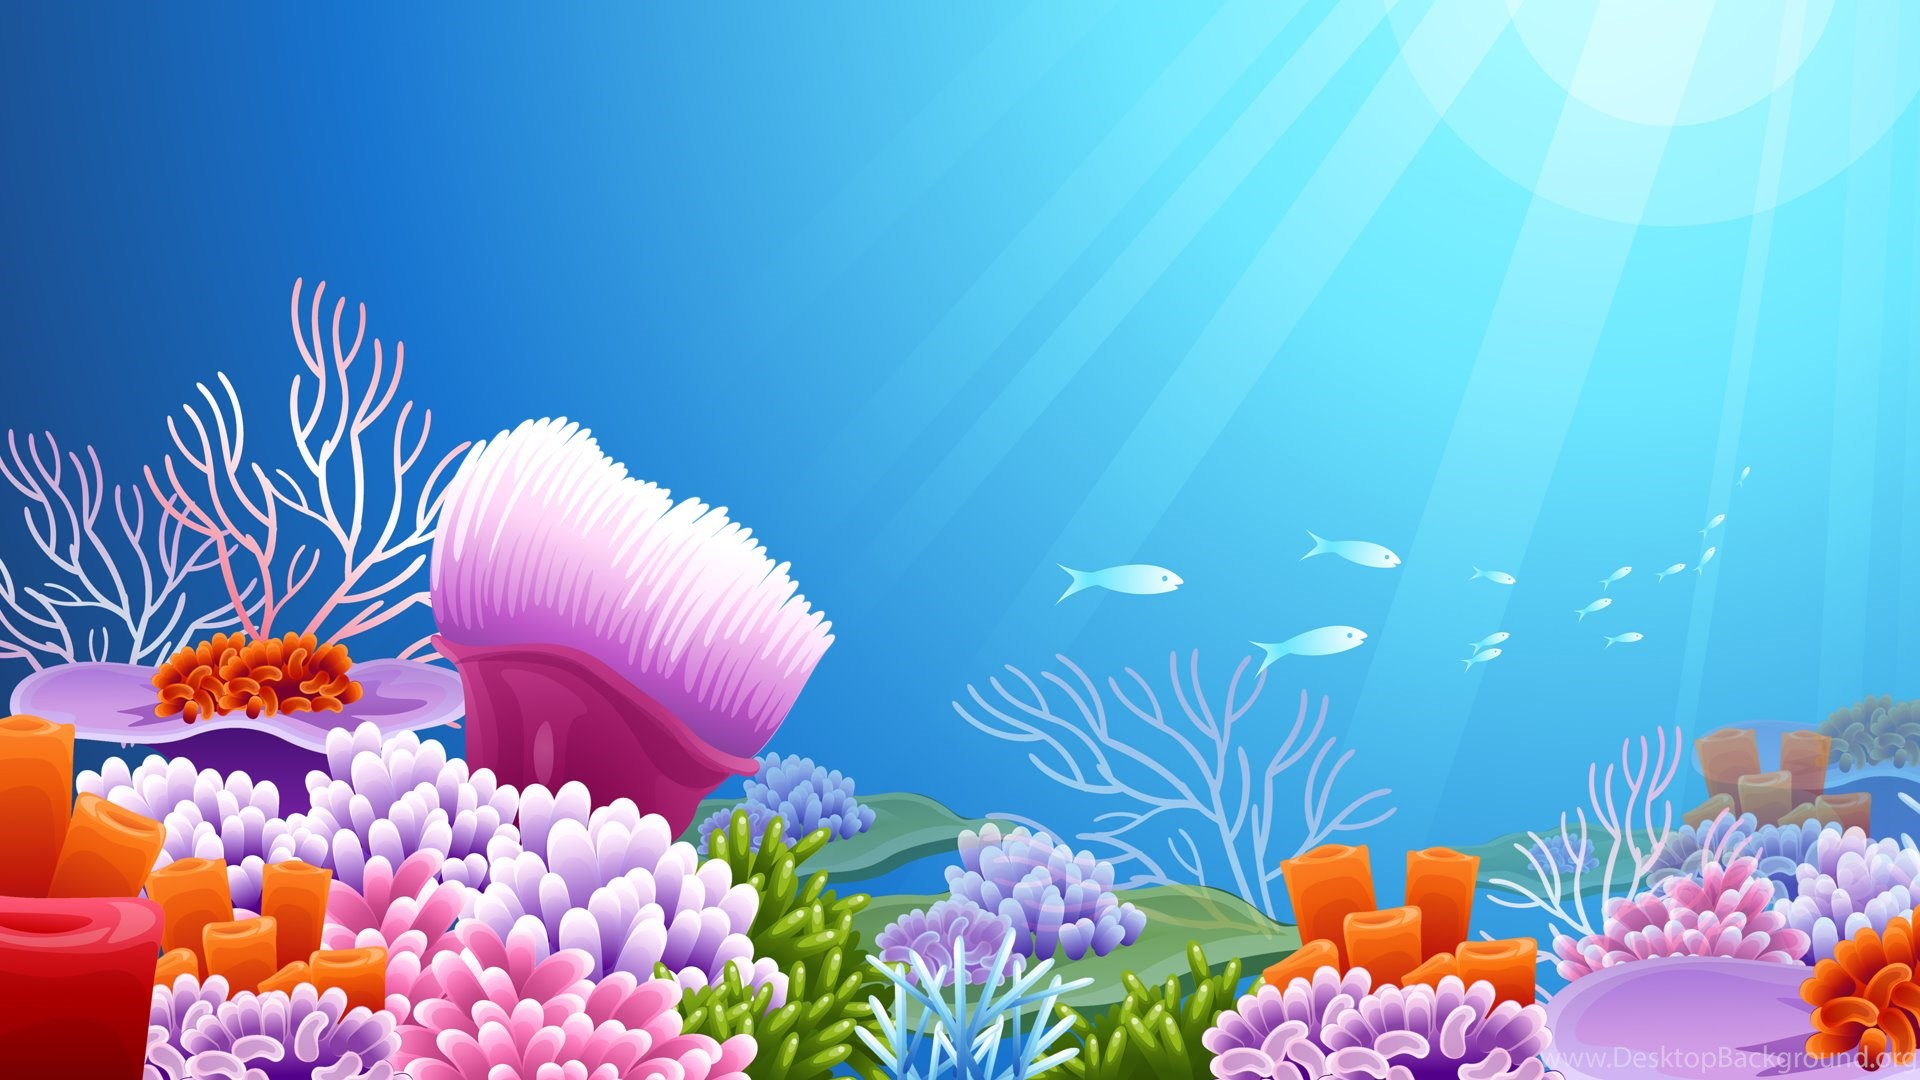 Underwater Wallpapers High Definition Images 116a Wallpapers Hd Fix Desktop Background